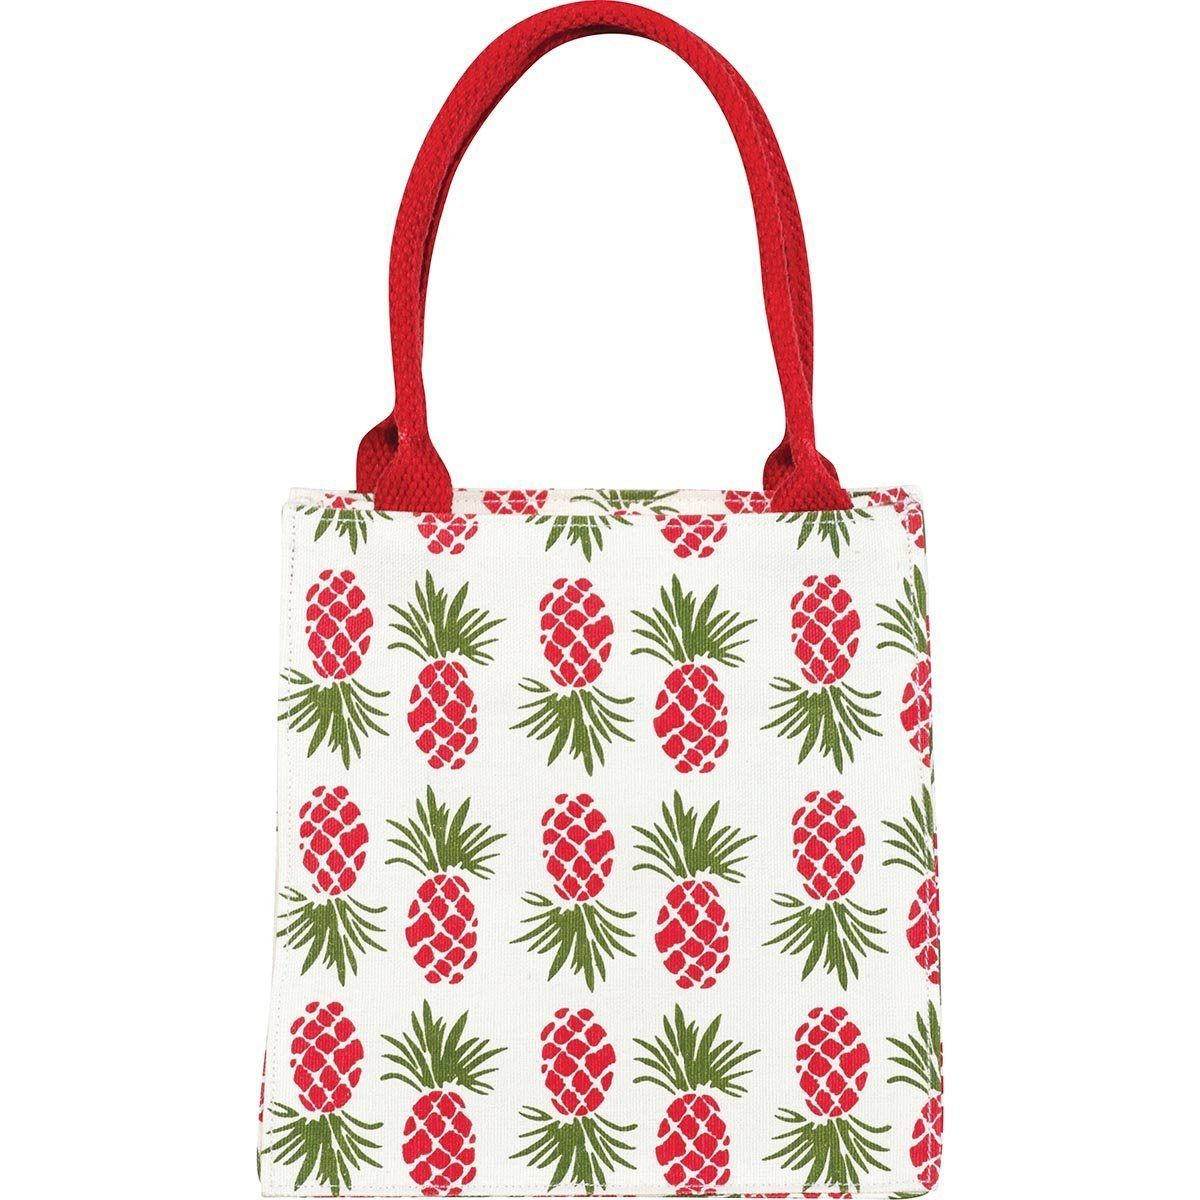 Holiday Pineapple Itsy Bitsy Gift Bag, Pack of 4 (Price is per Bag)